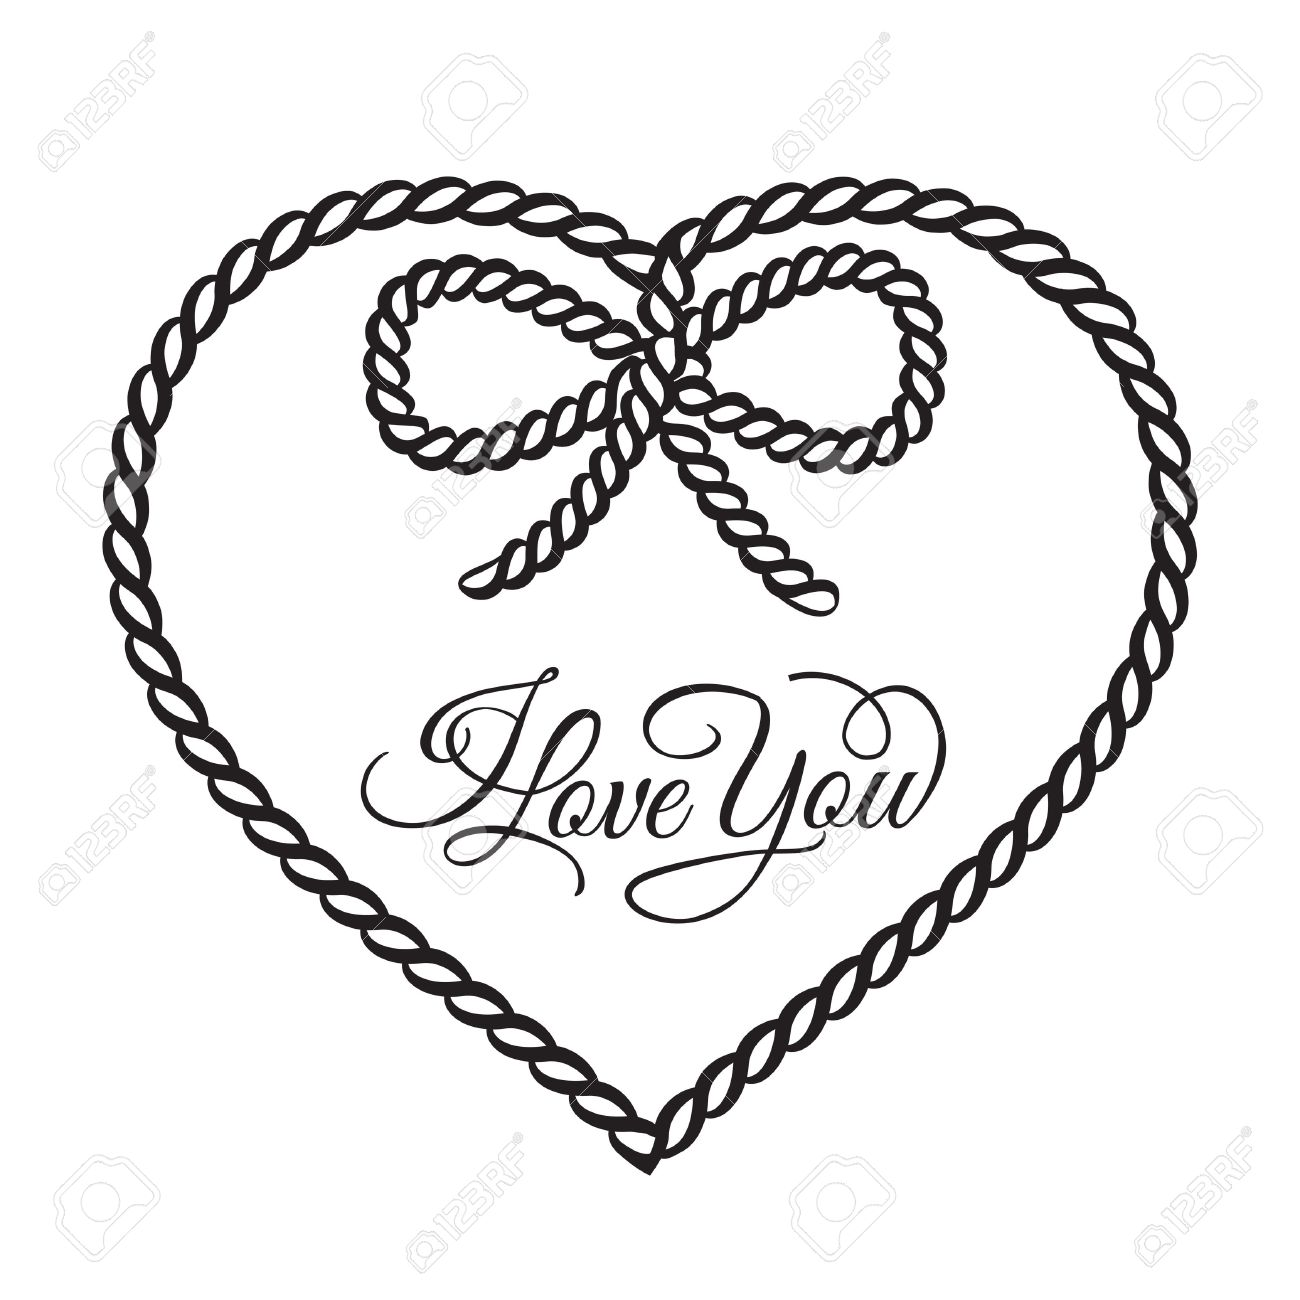 I Love You Card Vector Illustration Royalty Free Klipartlar